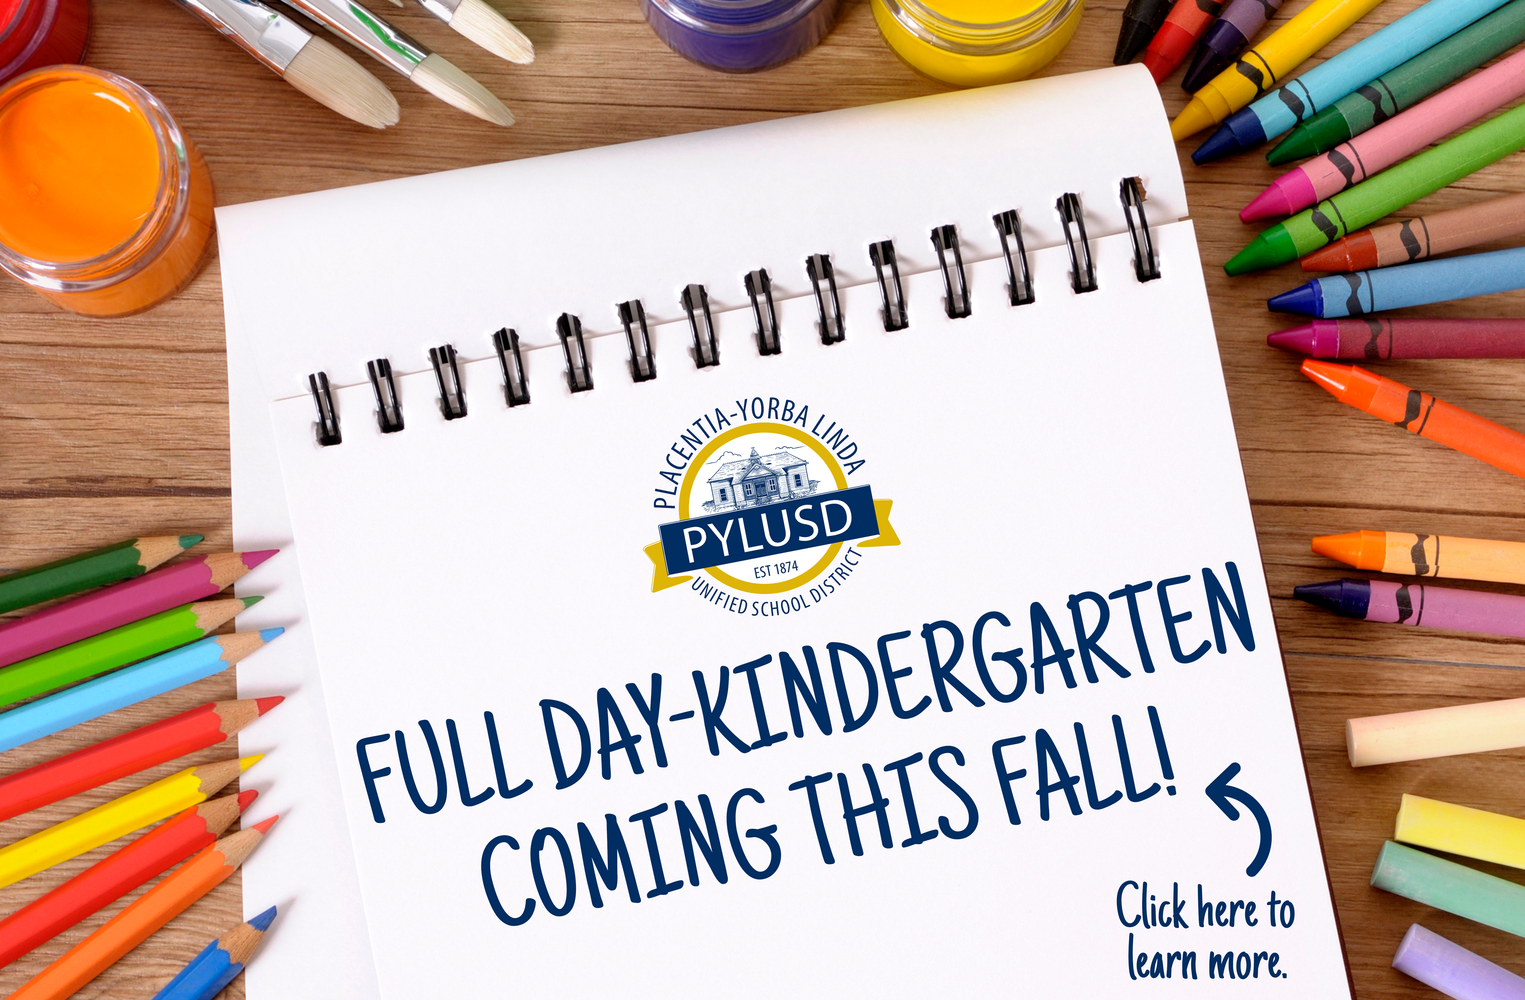 Full-Day Kindergarten coming this fall to PYLUSD.